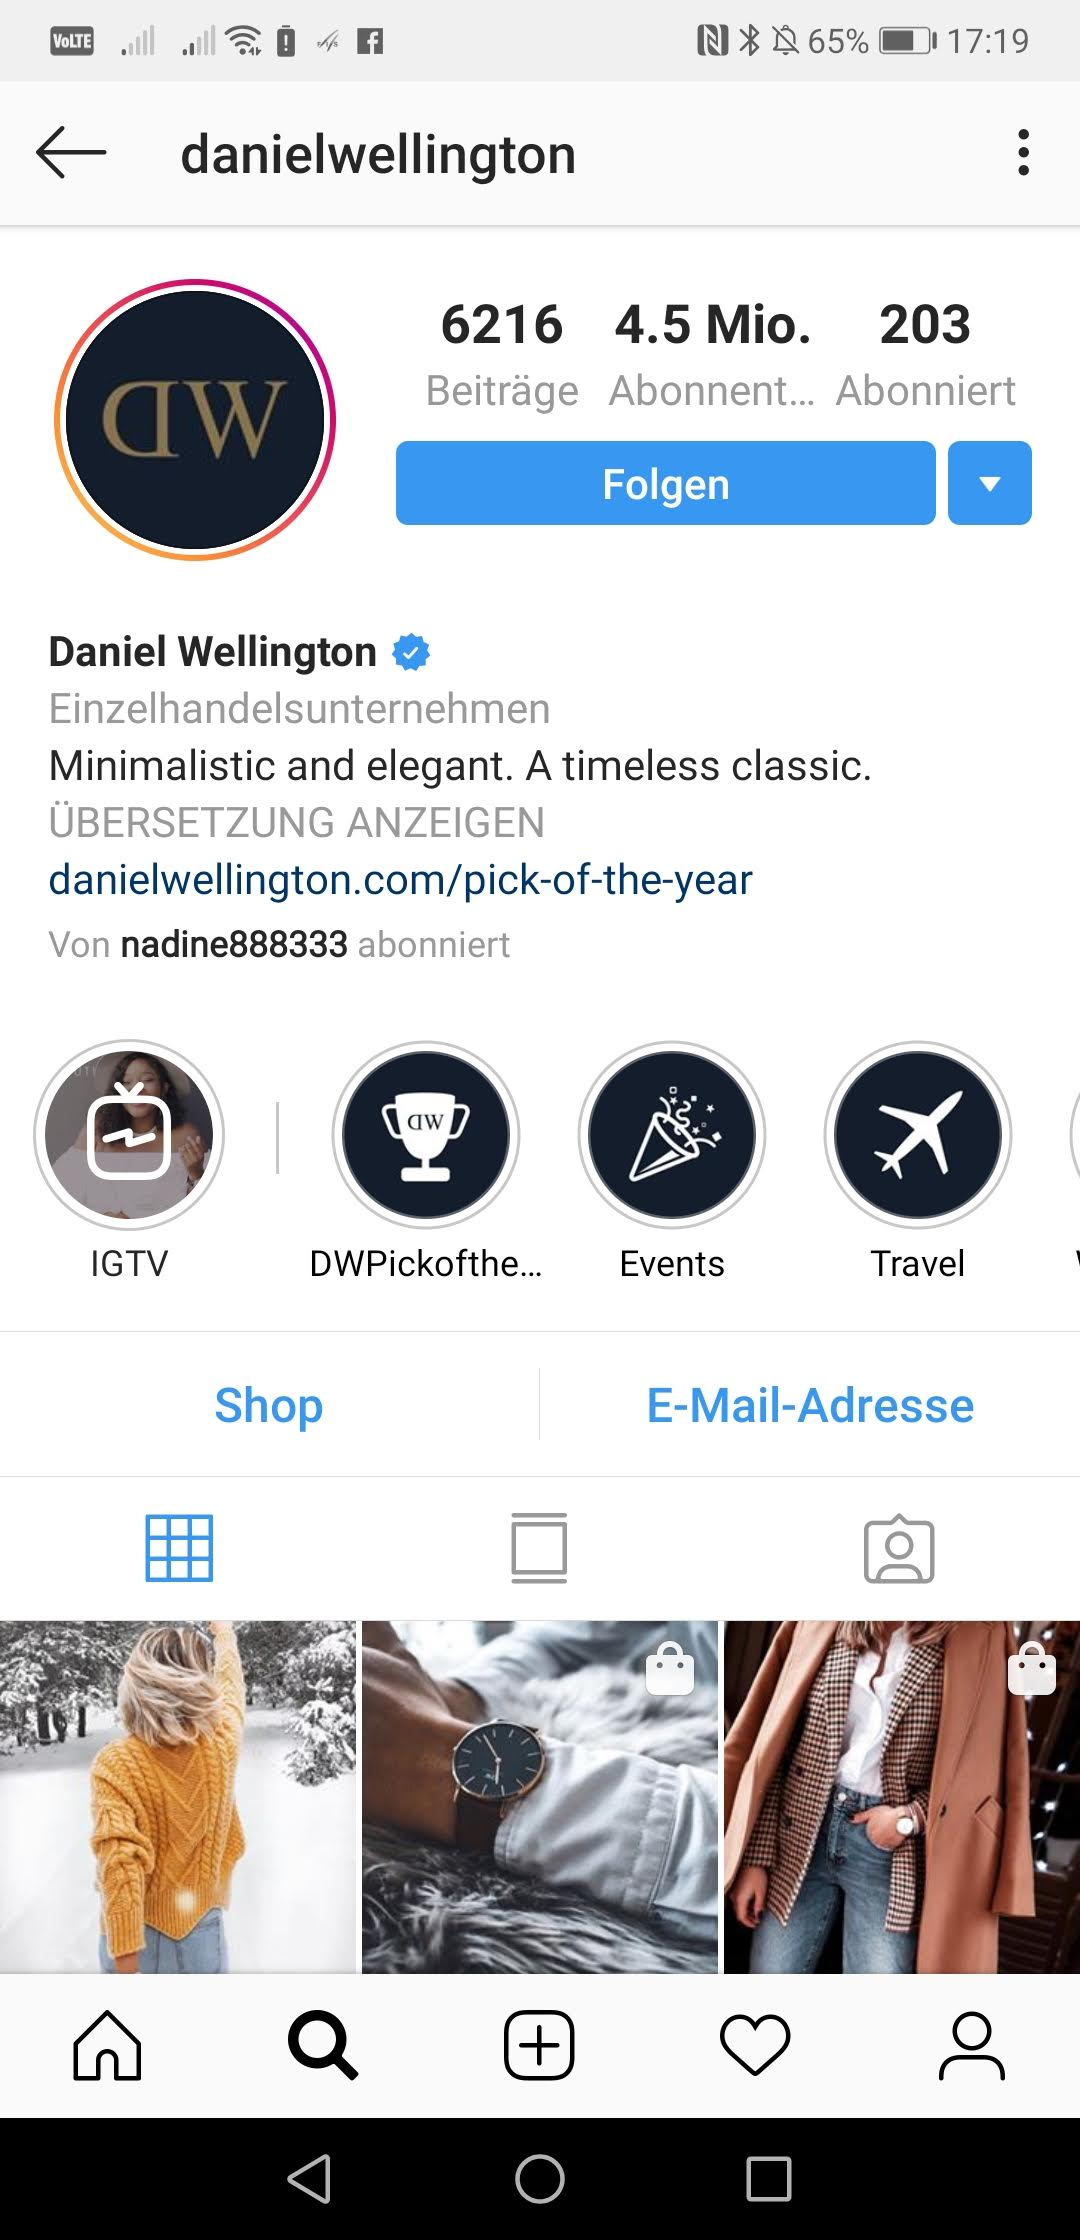 Screenshot 20190118 171930 com.instagram.android - Instagram Marketing mit Trendda